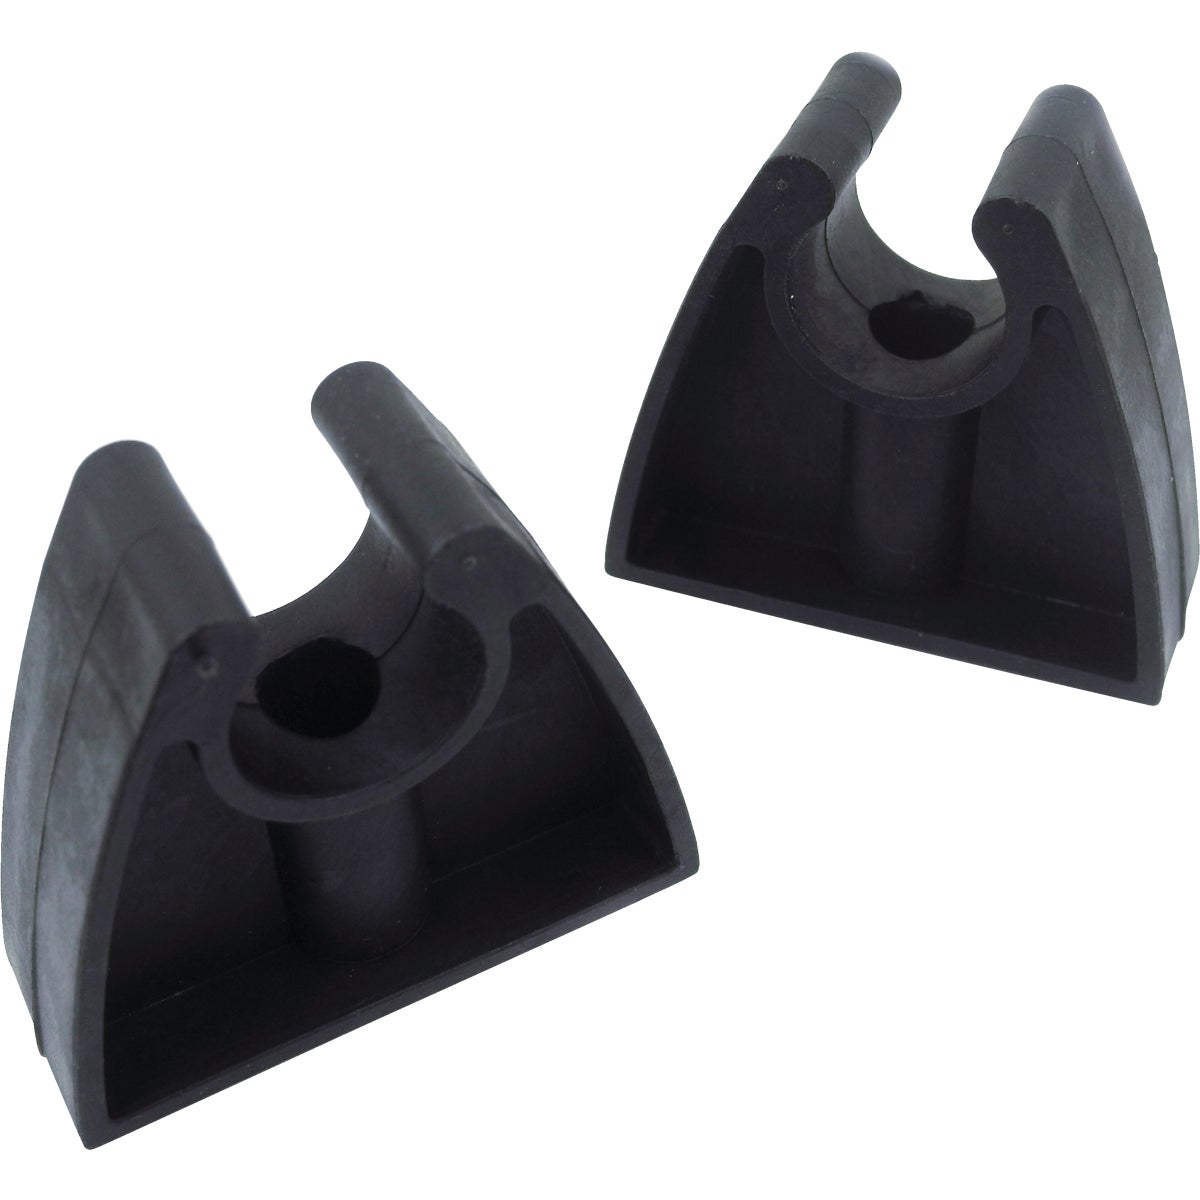 RUBBER STORAGE CLIPS - 72051 by Seachoice Prod